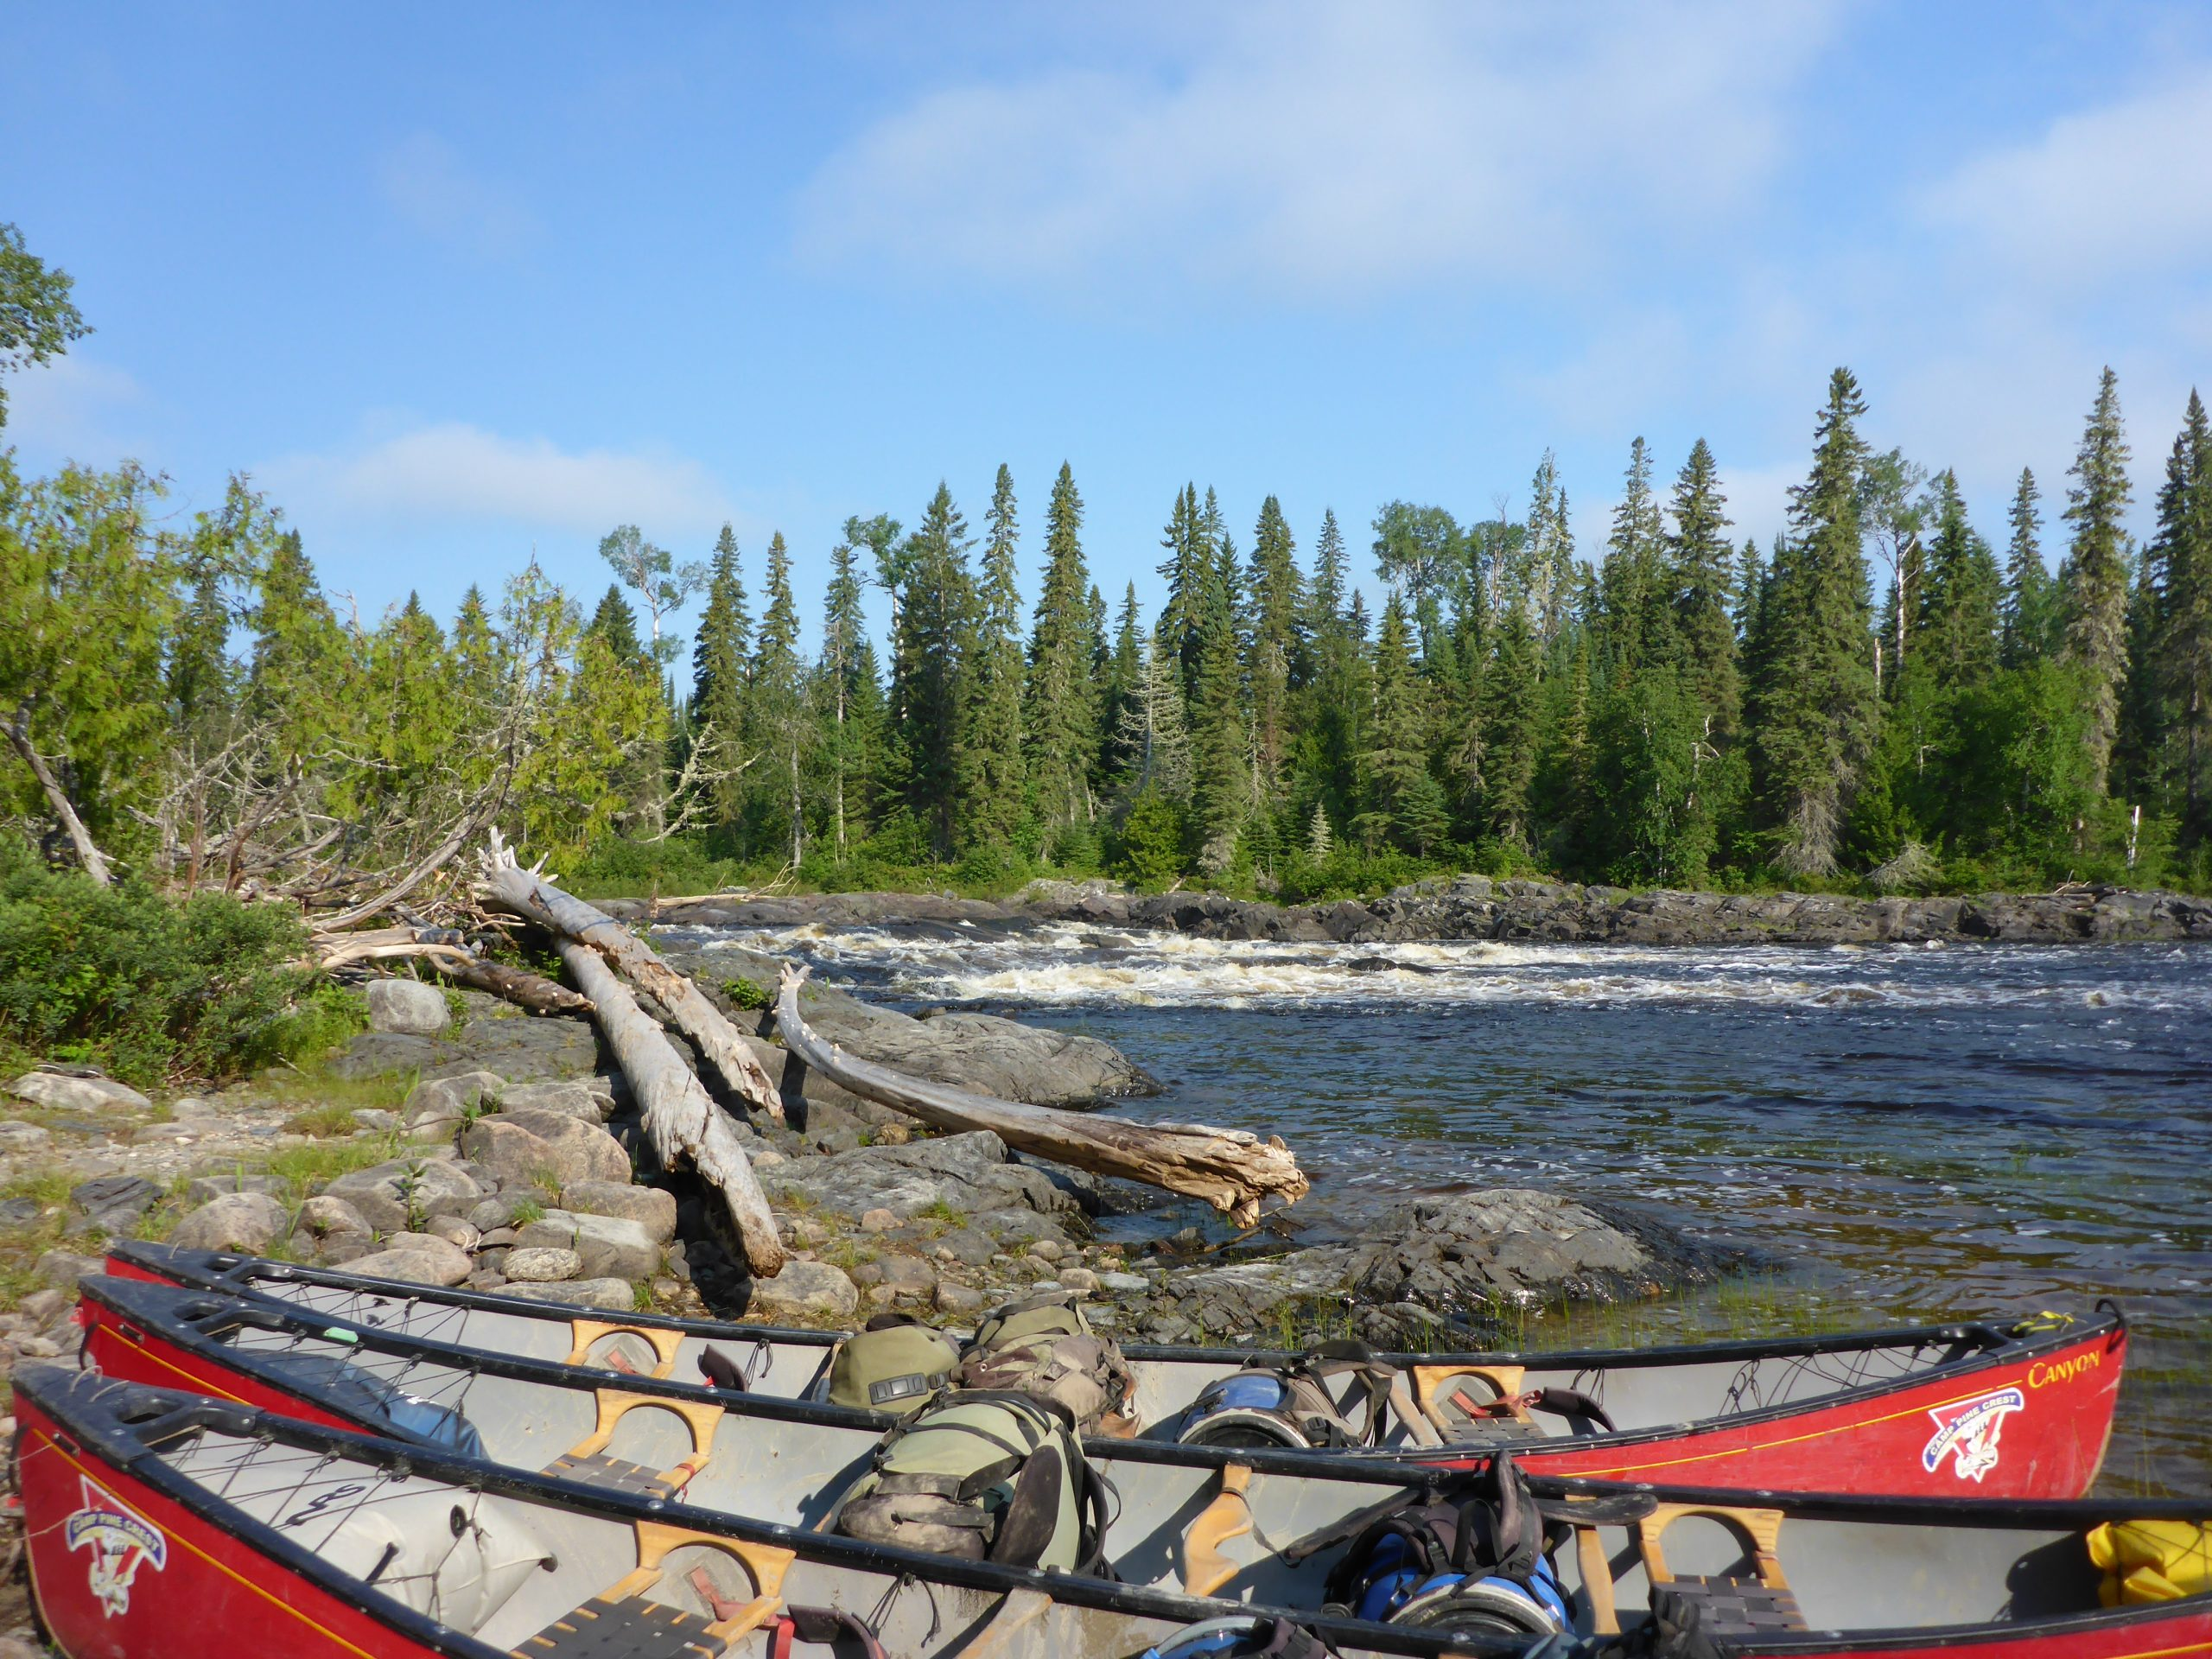 Loaded Canoes before a Portage